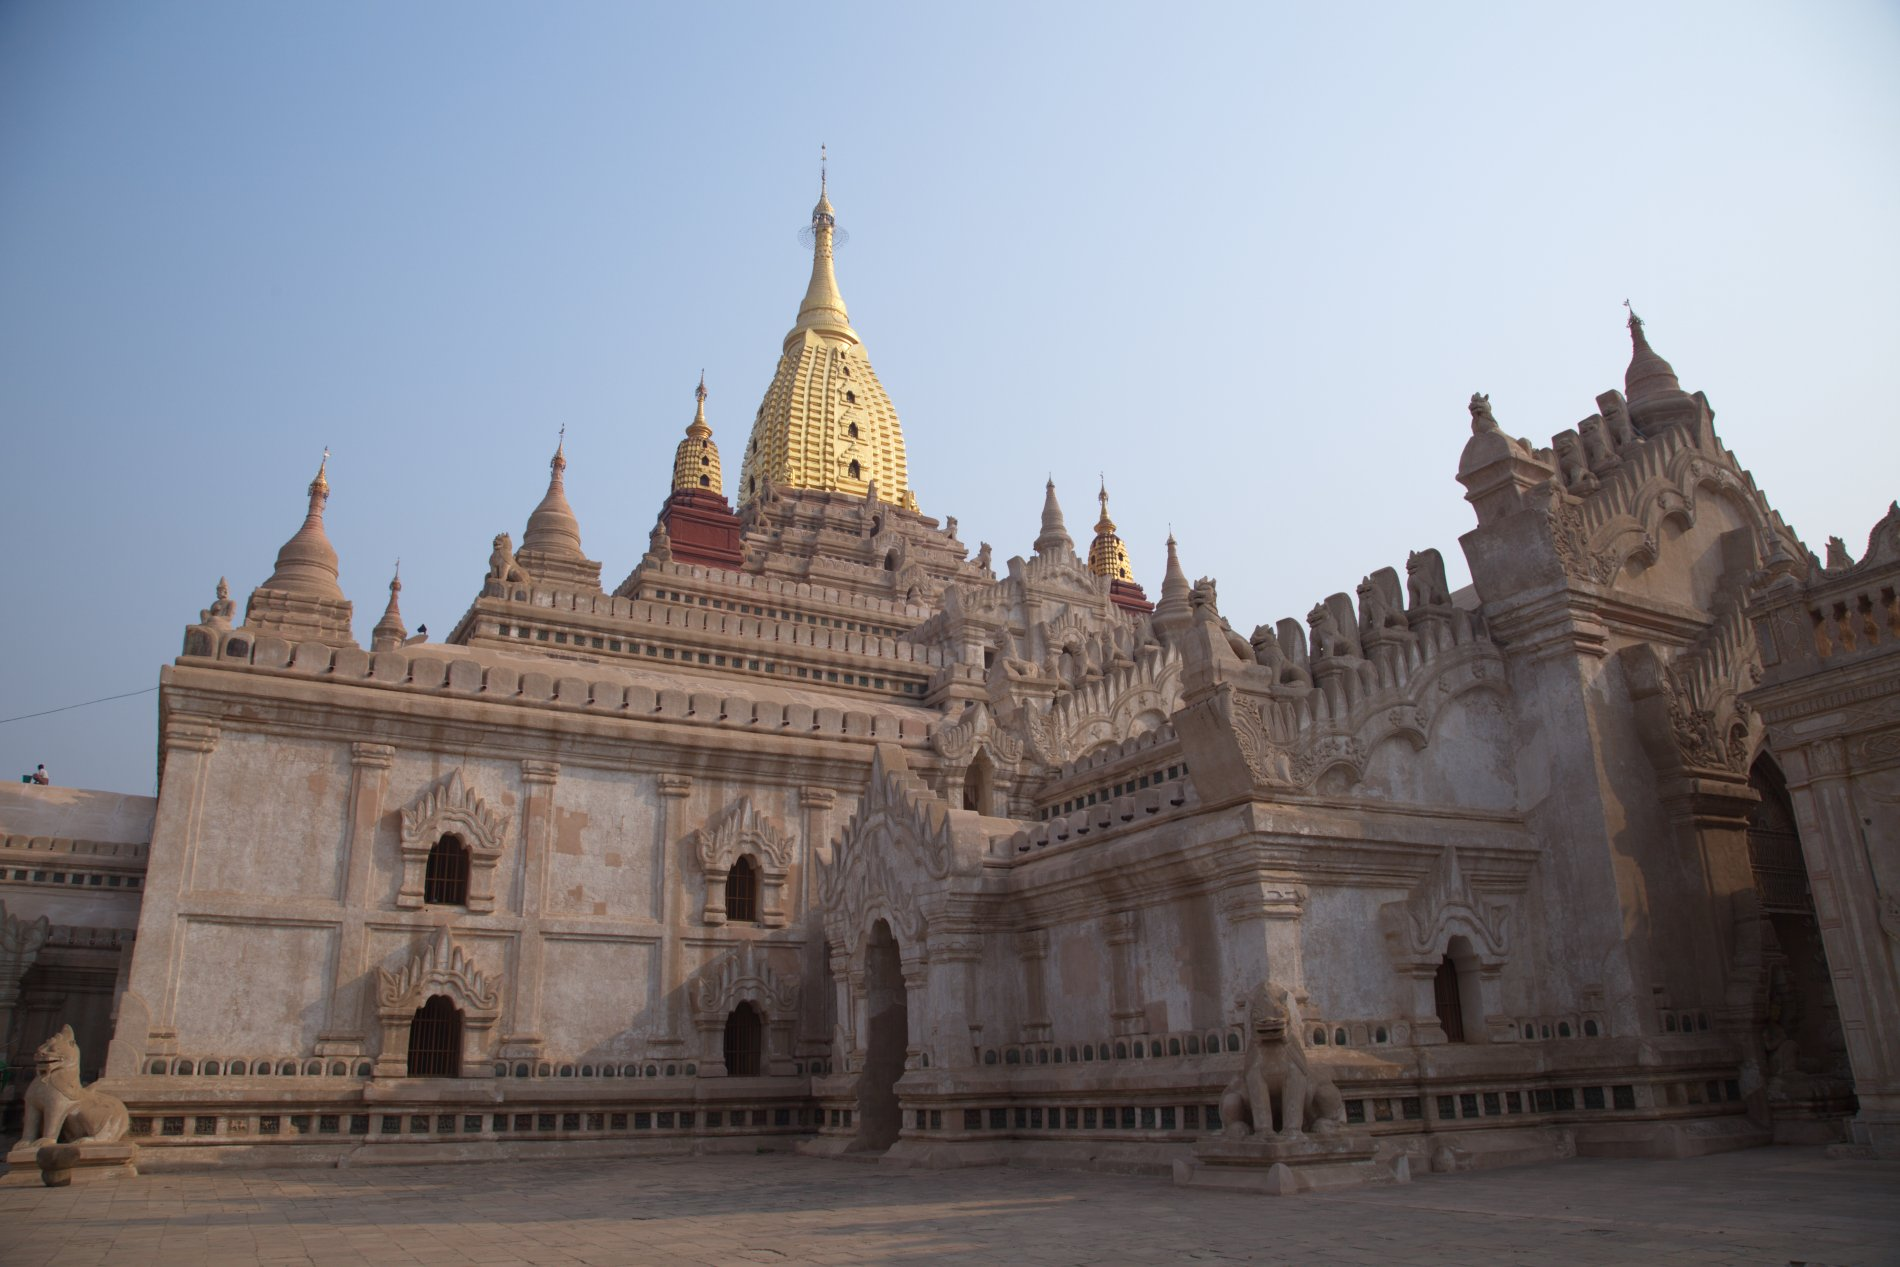 Bagan_066.jpg-commment